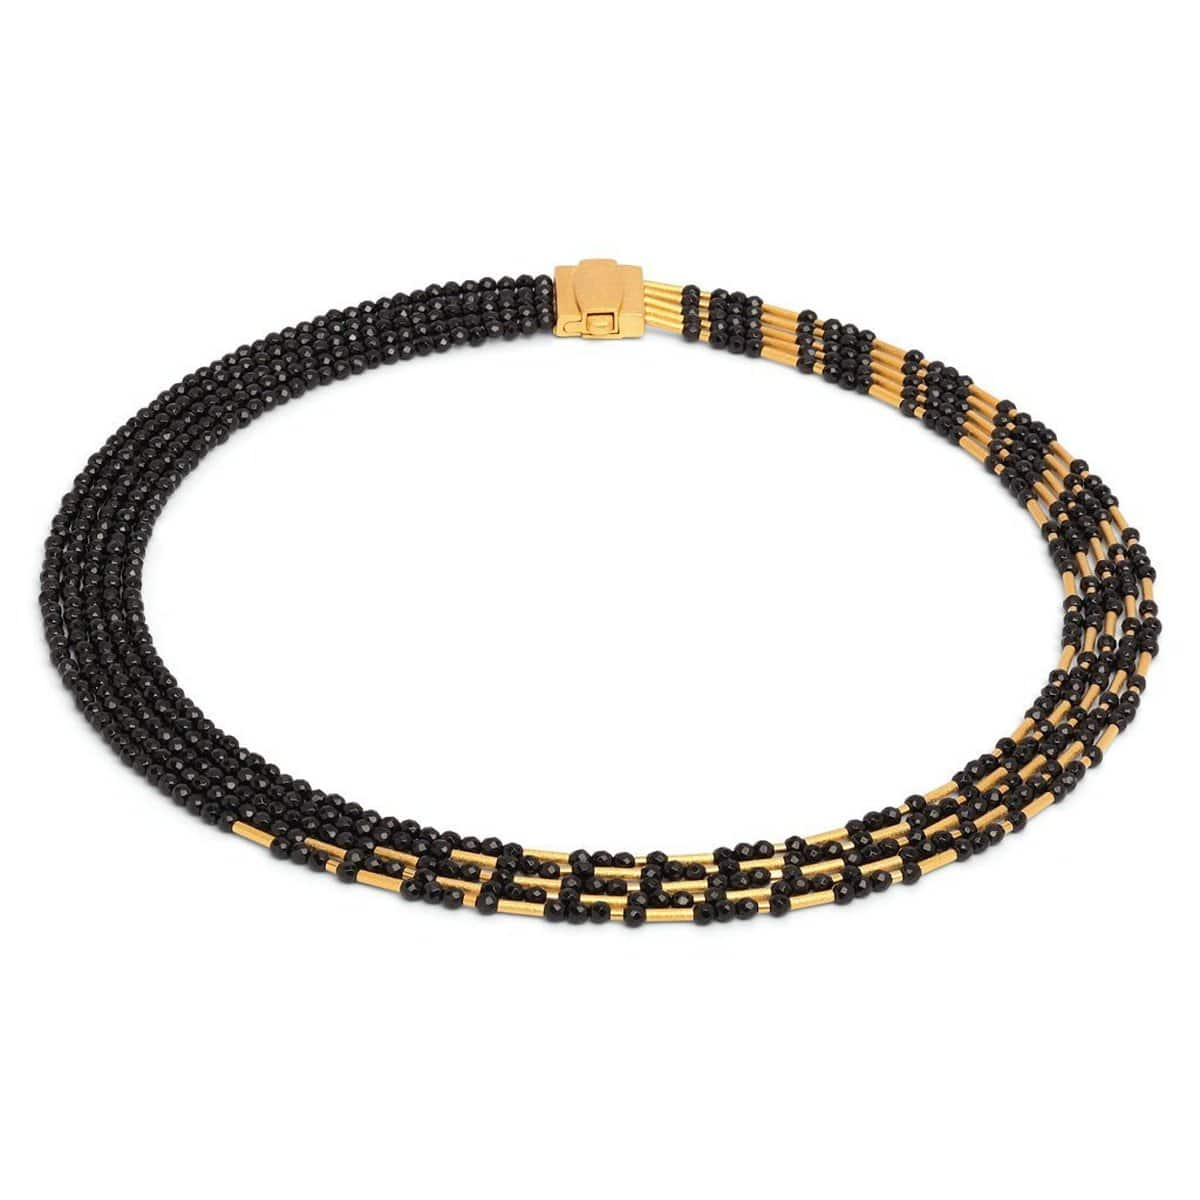 Cleopatra Black Spinel Necklace - 84014496-Bernd Wolf-Renee Taylor Gallery